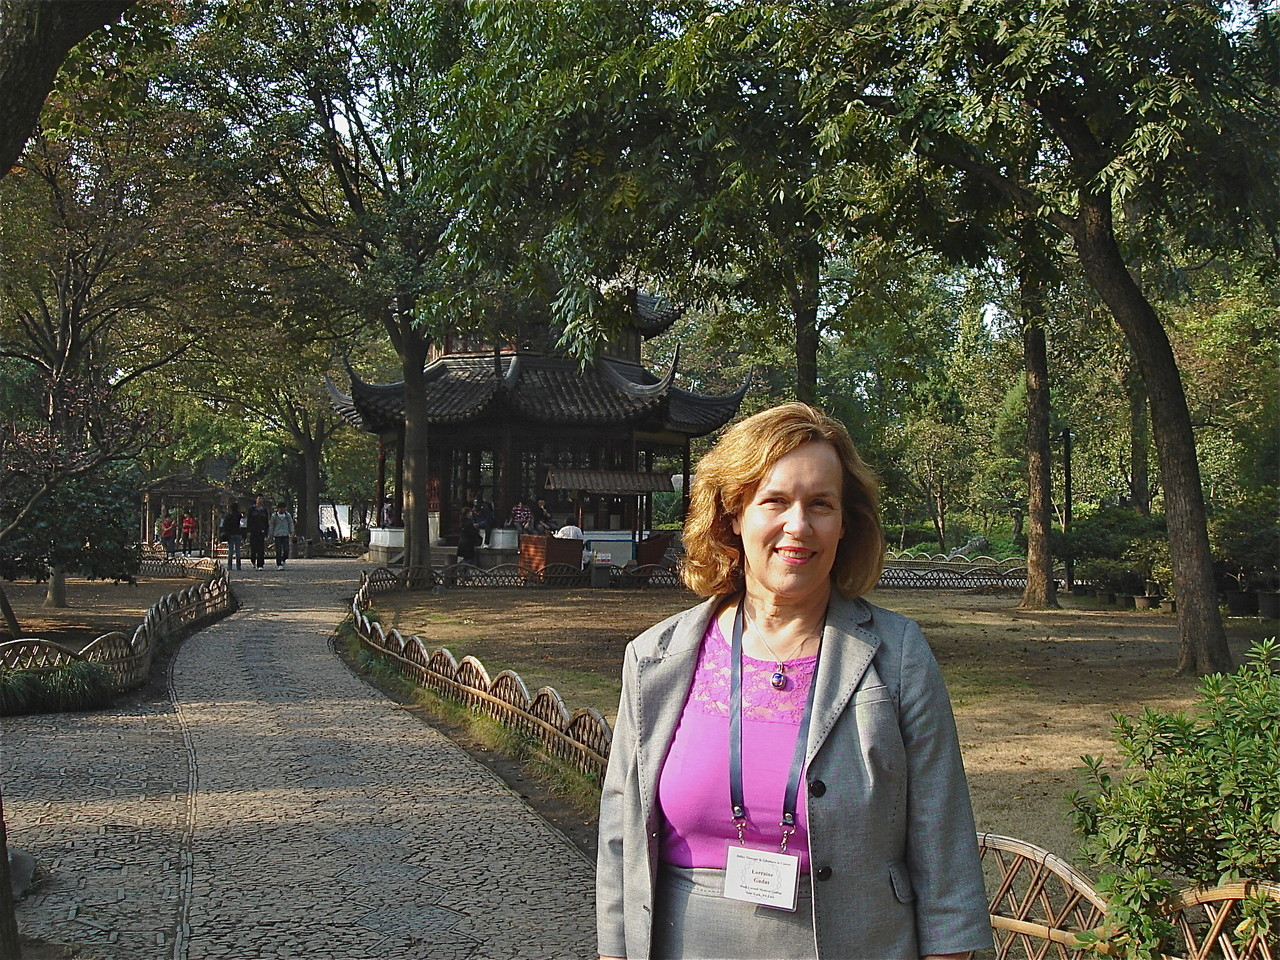 Lorraine at the Humble Administrator's Garden